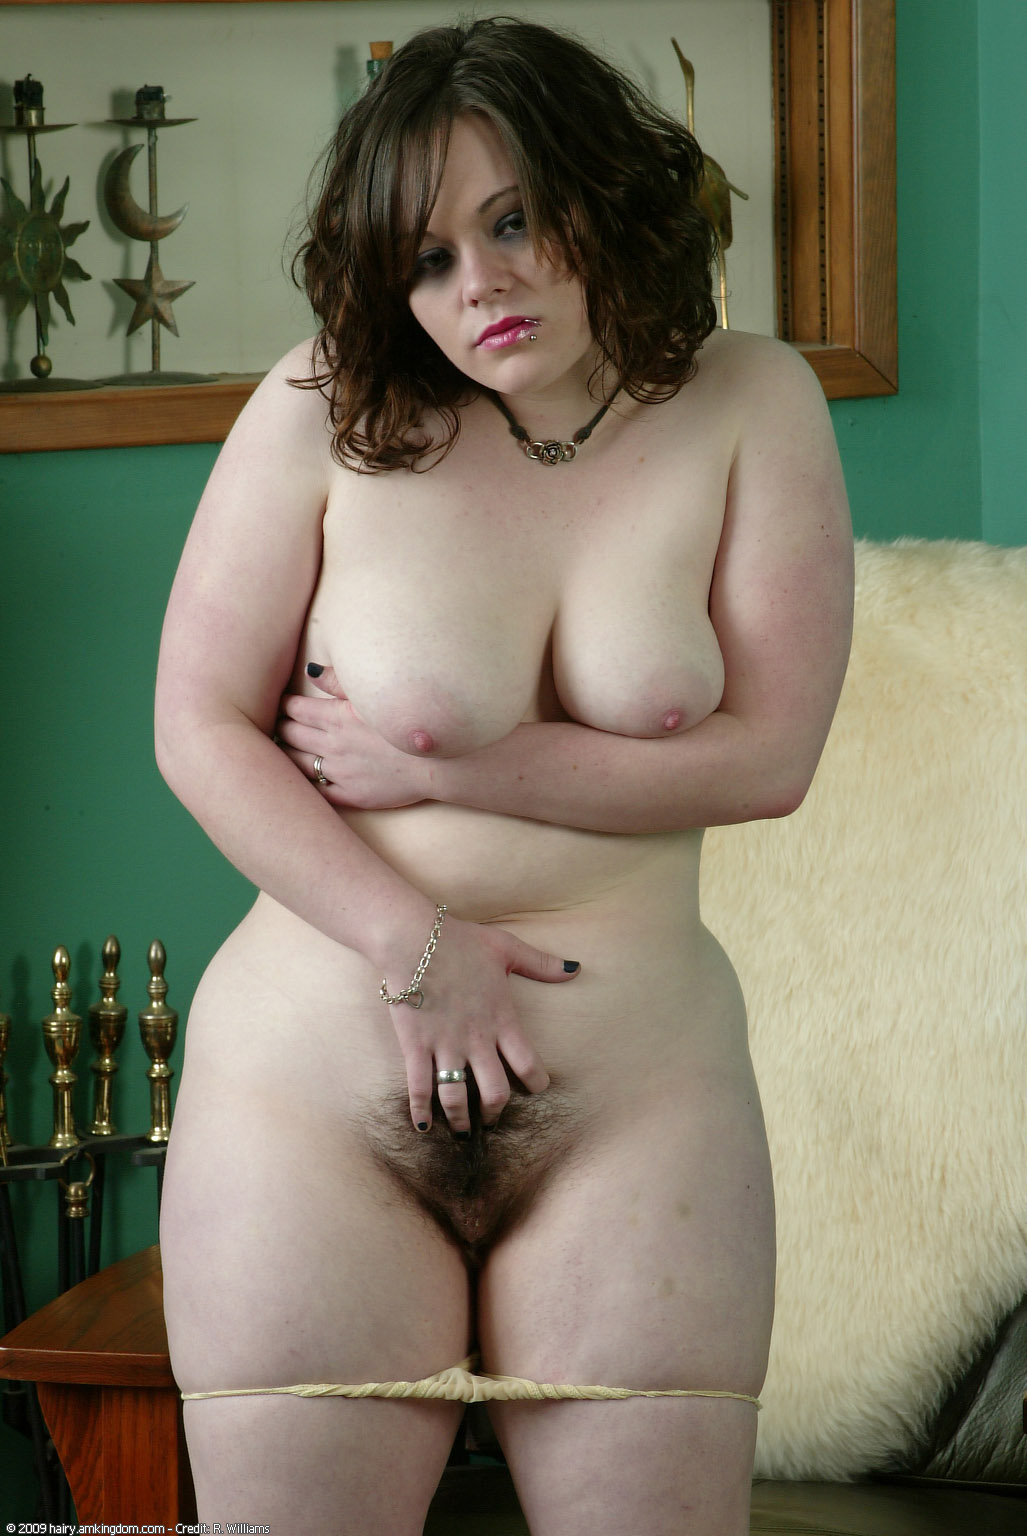 hairy fat women nude